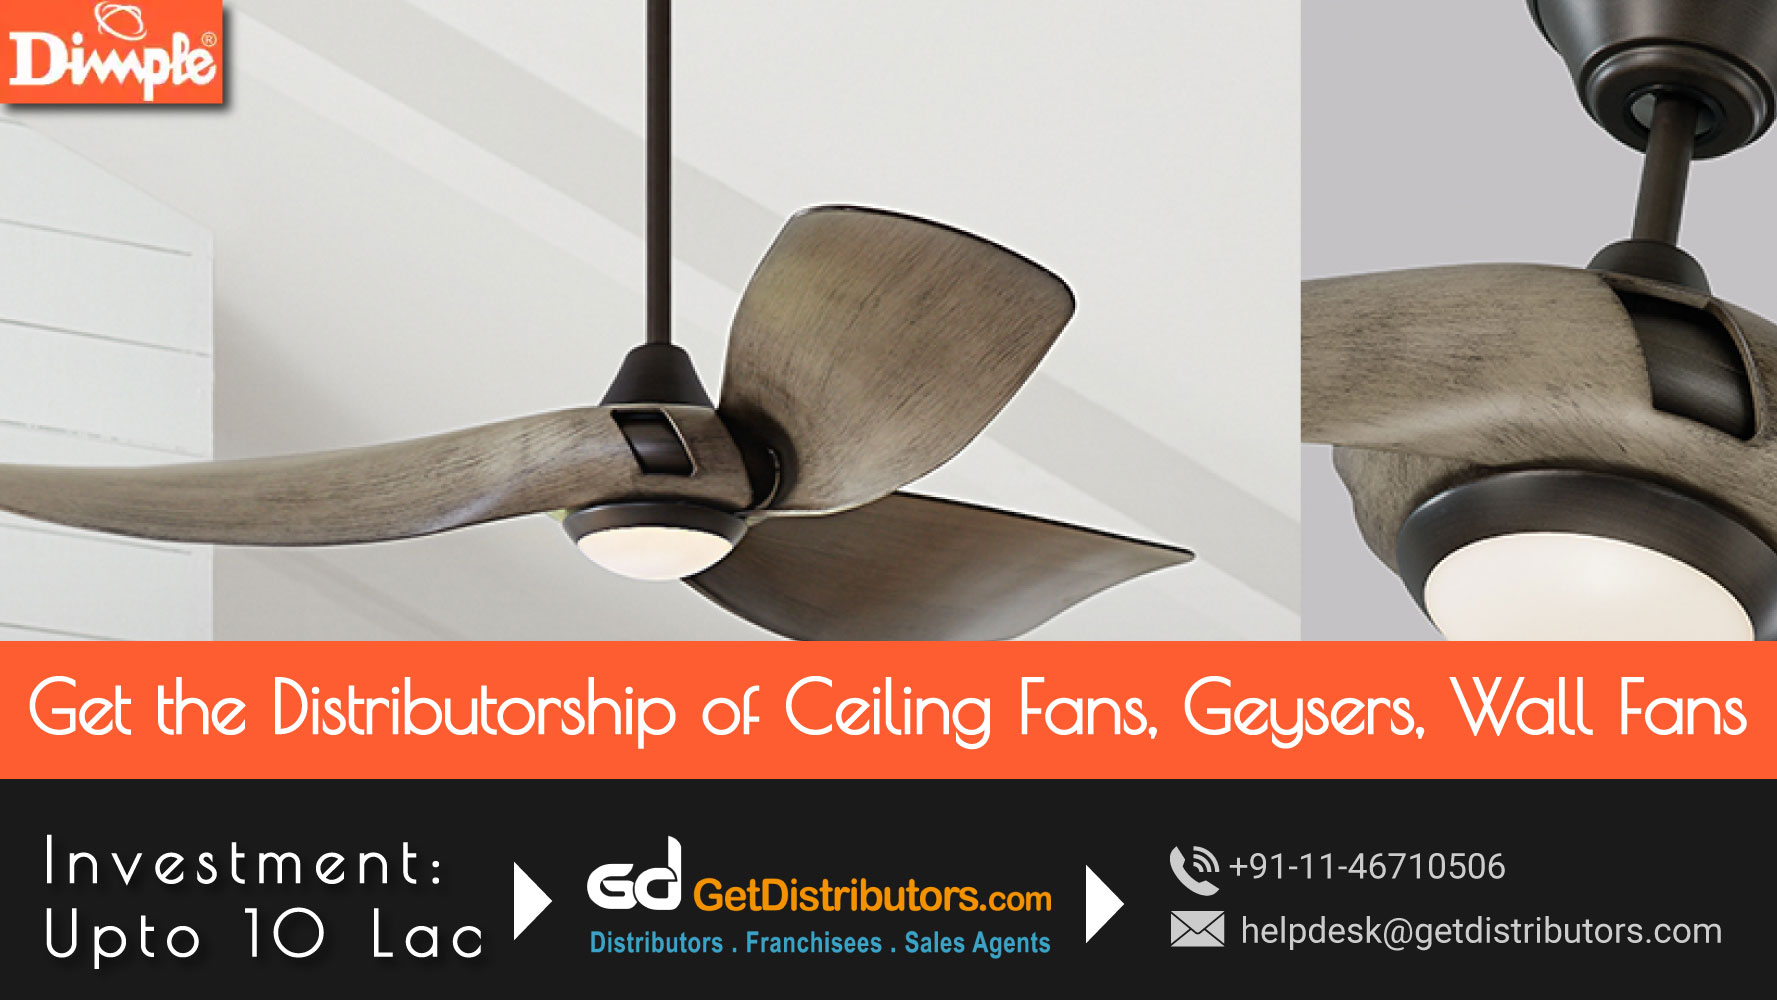 High Performance Ceiling Fans & Geysers That Are Affordable